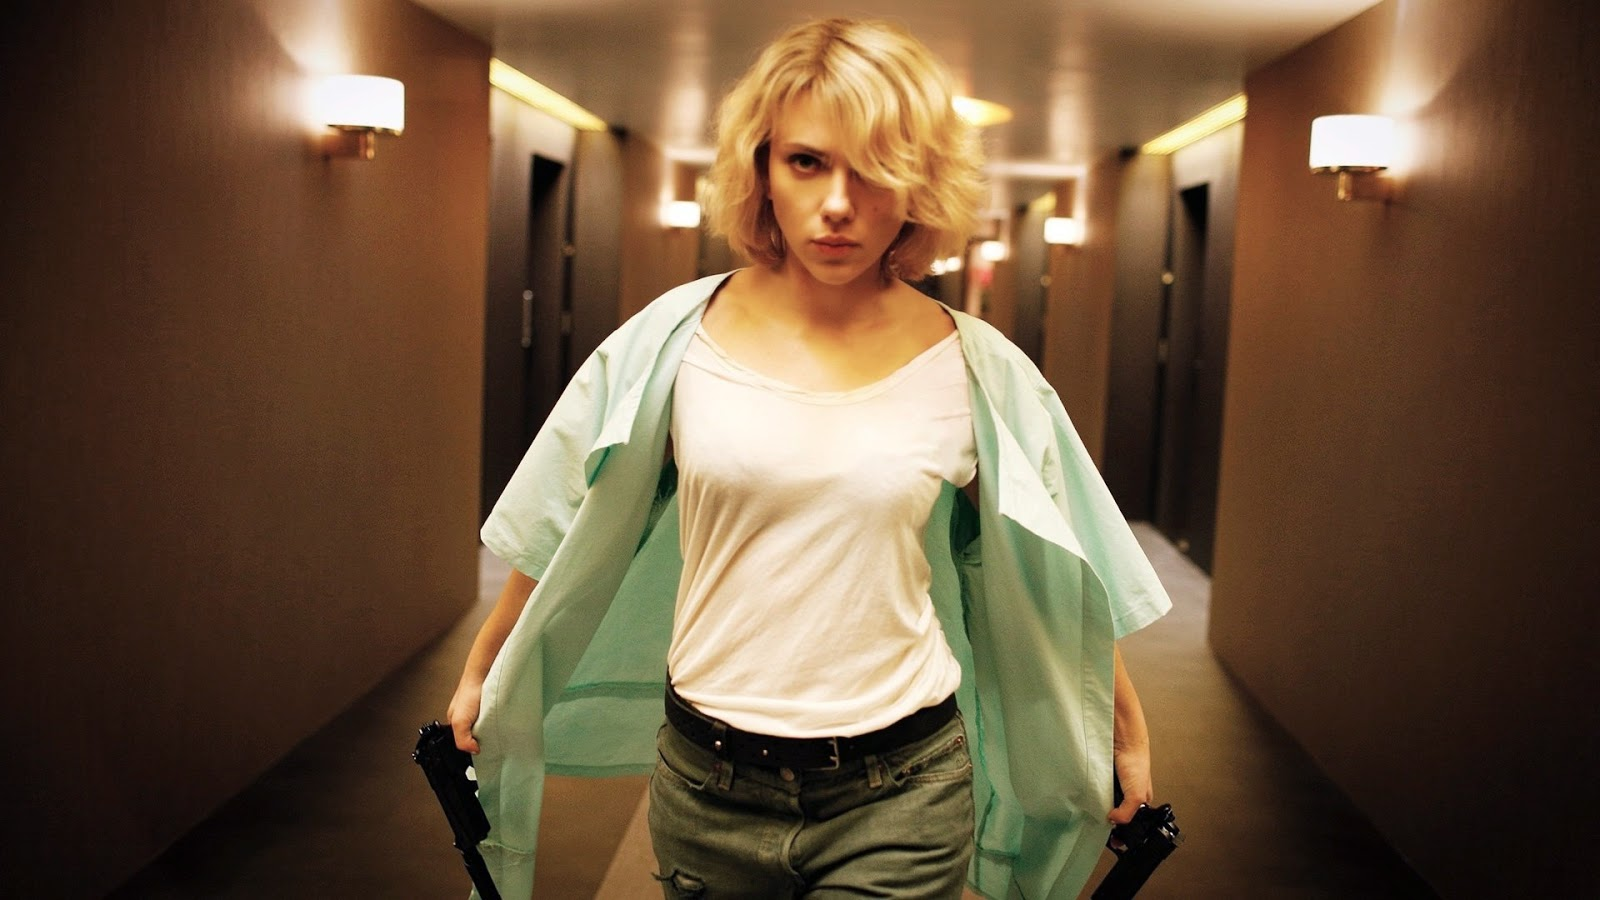 Scarlet Johansson as Lucy, Directed by Luc Besson